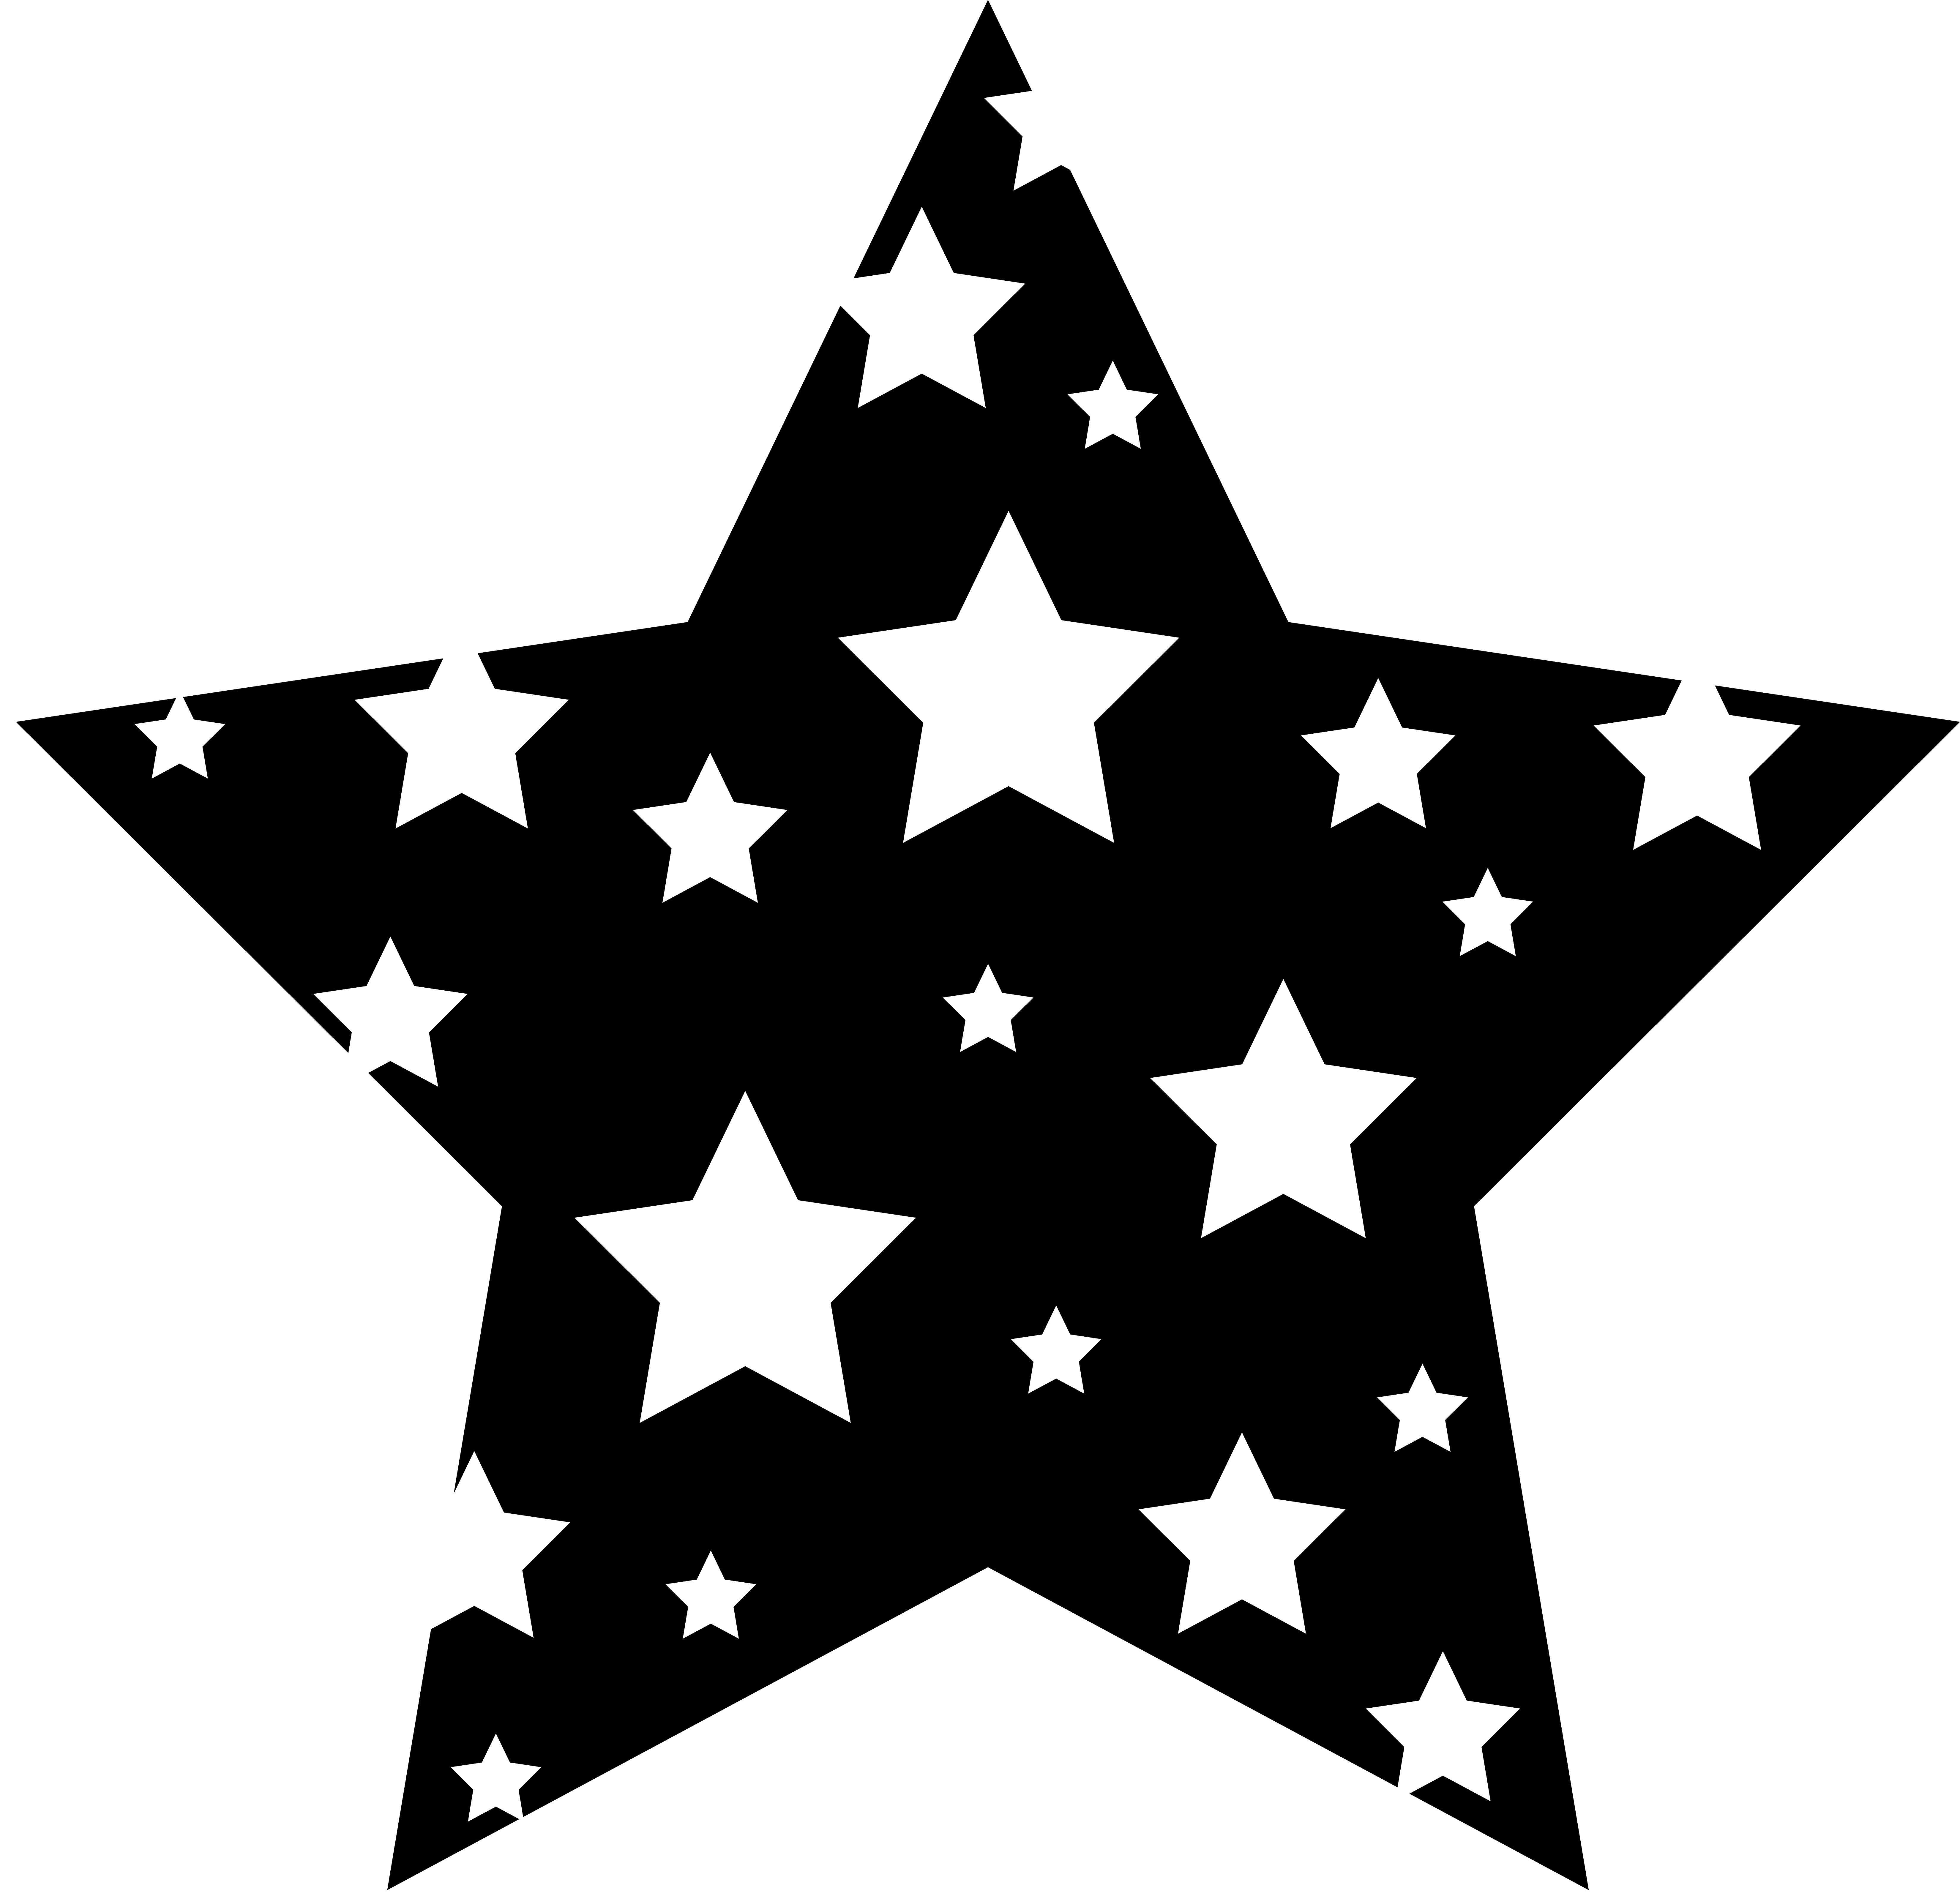 Black and white star money clipart graphic freeuse stock Free Free Star Images, Download Free Clip Art, Free Clip Art on ... graphic freeuse stock